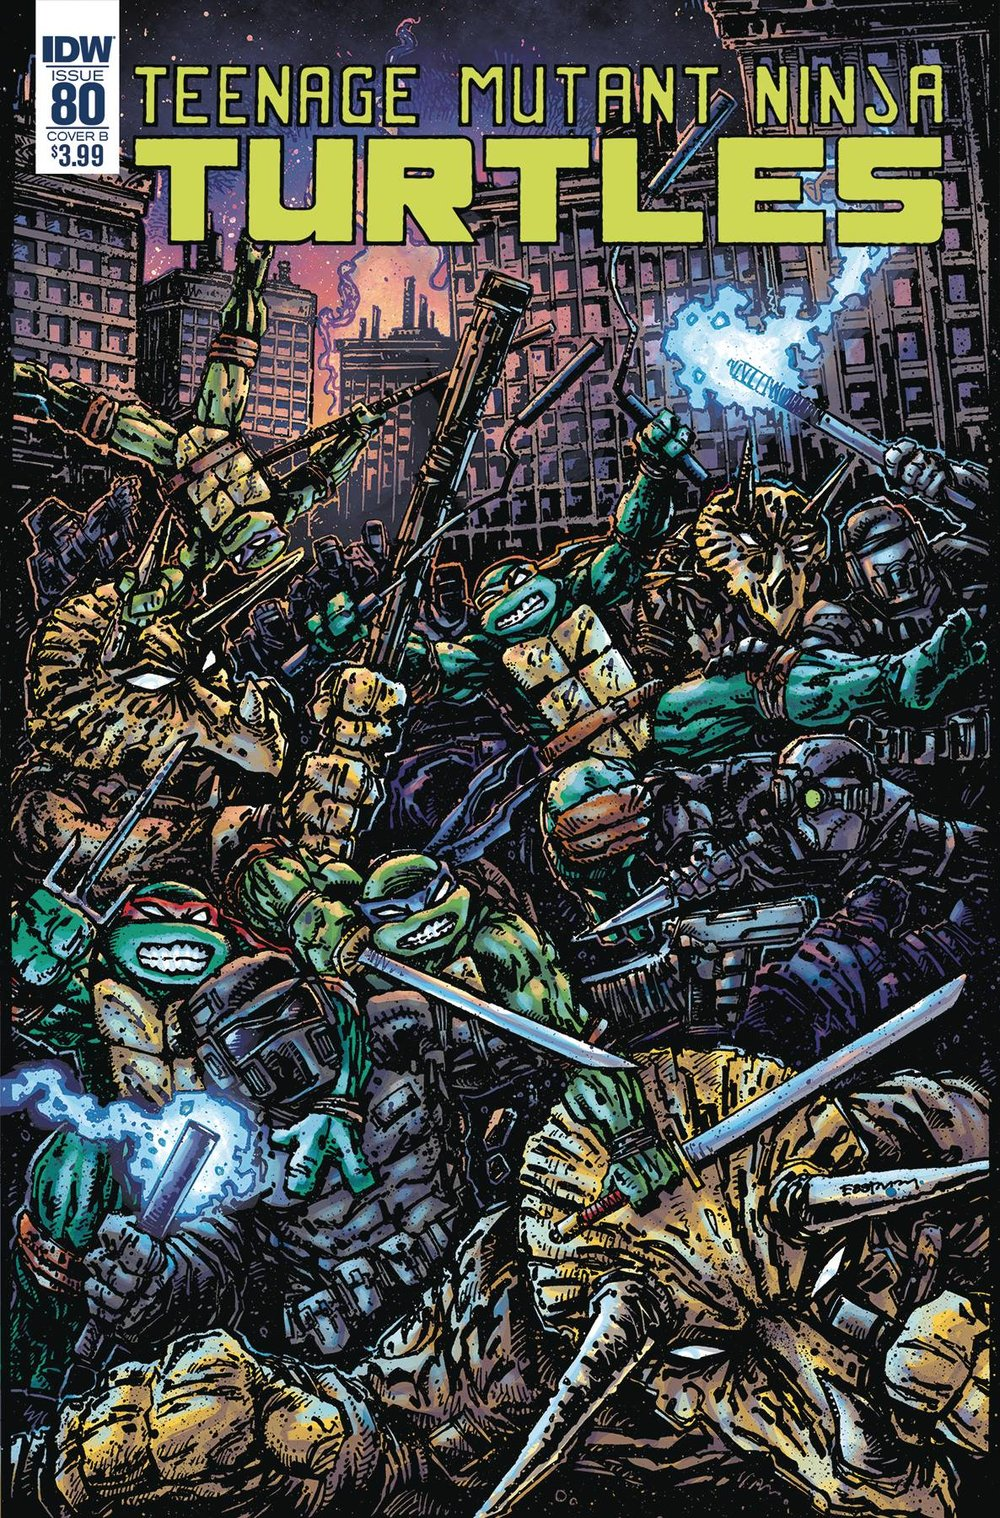 TMNT ONGOING 80 CVR B EASTMAN.jpg